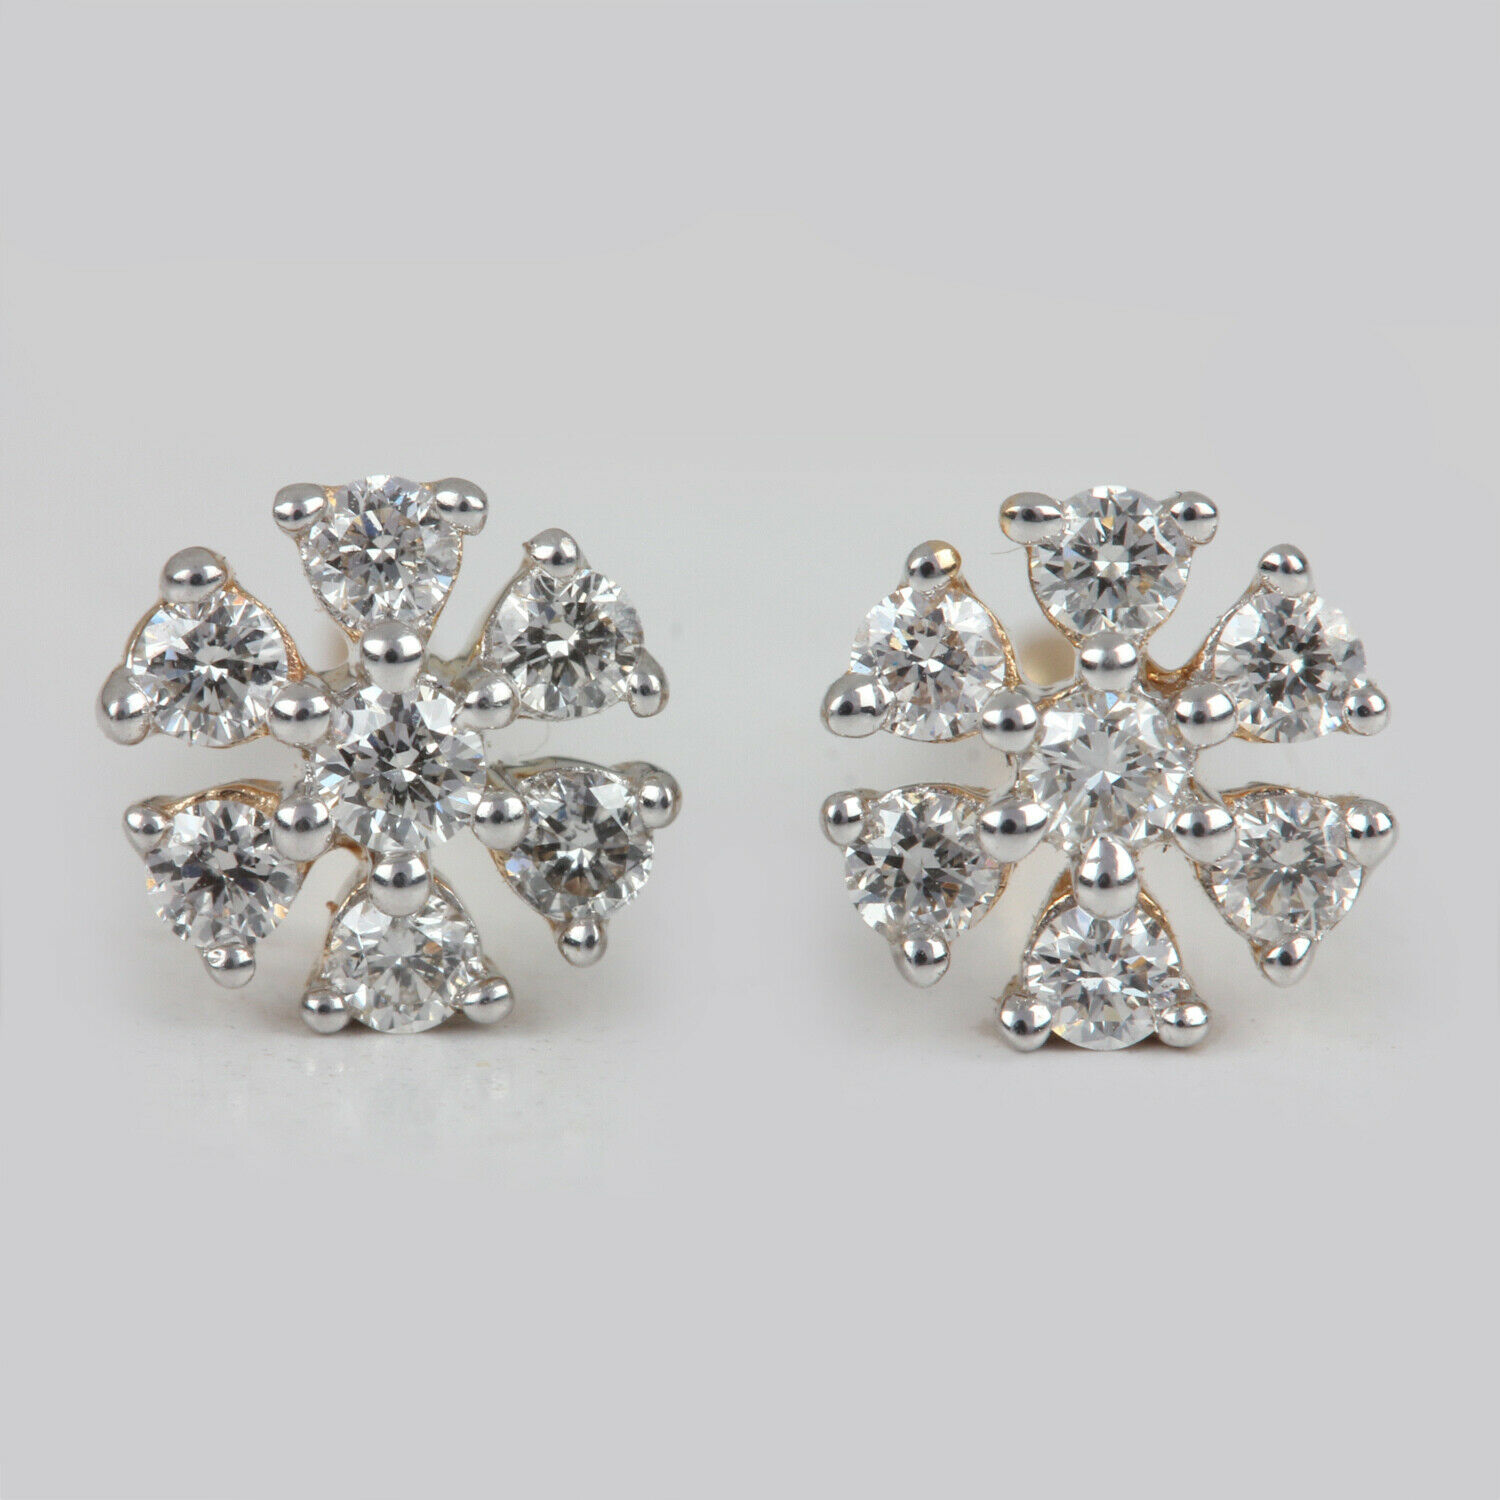 Diamond Stud Earrings Solid 14k Yellow gold Vintage Style Jewelry NEW COLLECTION